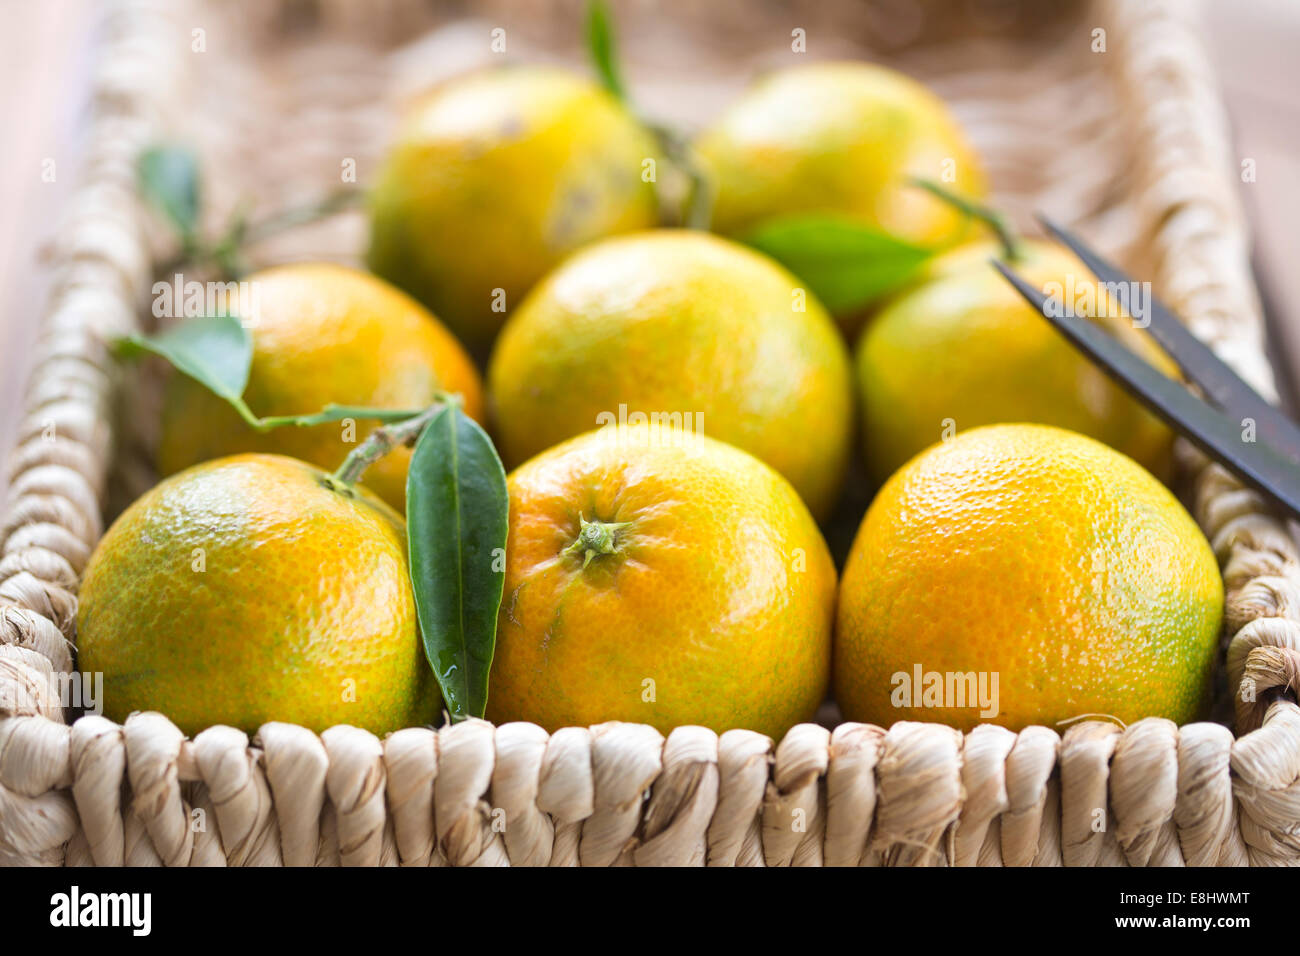 clementines in woven basket with scissors - Stock Image